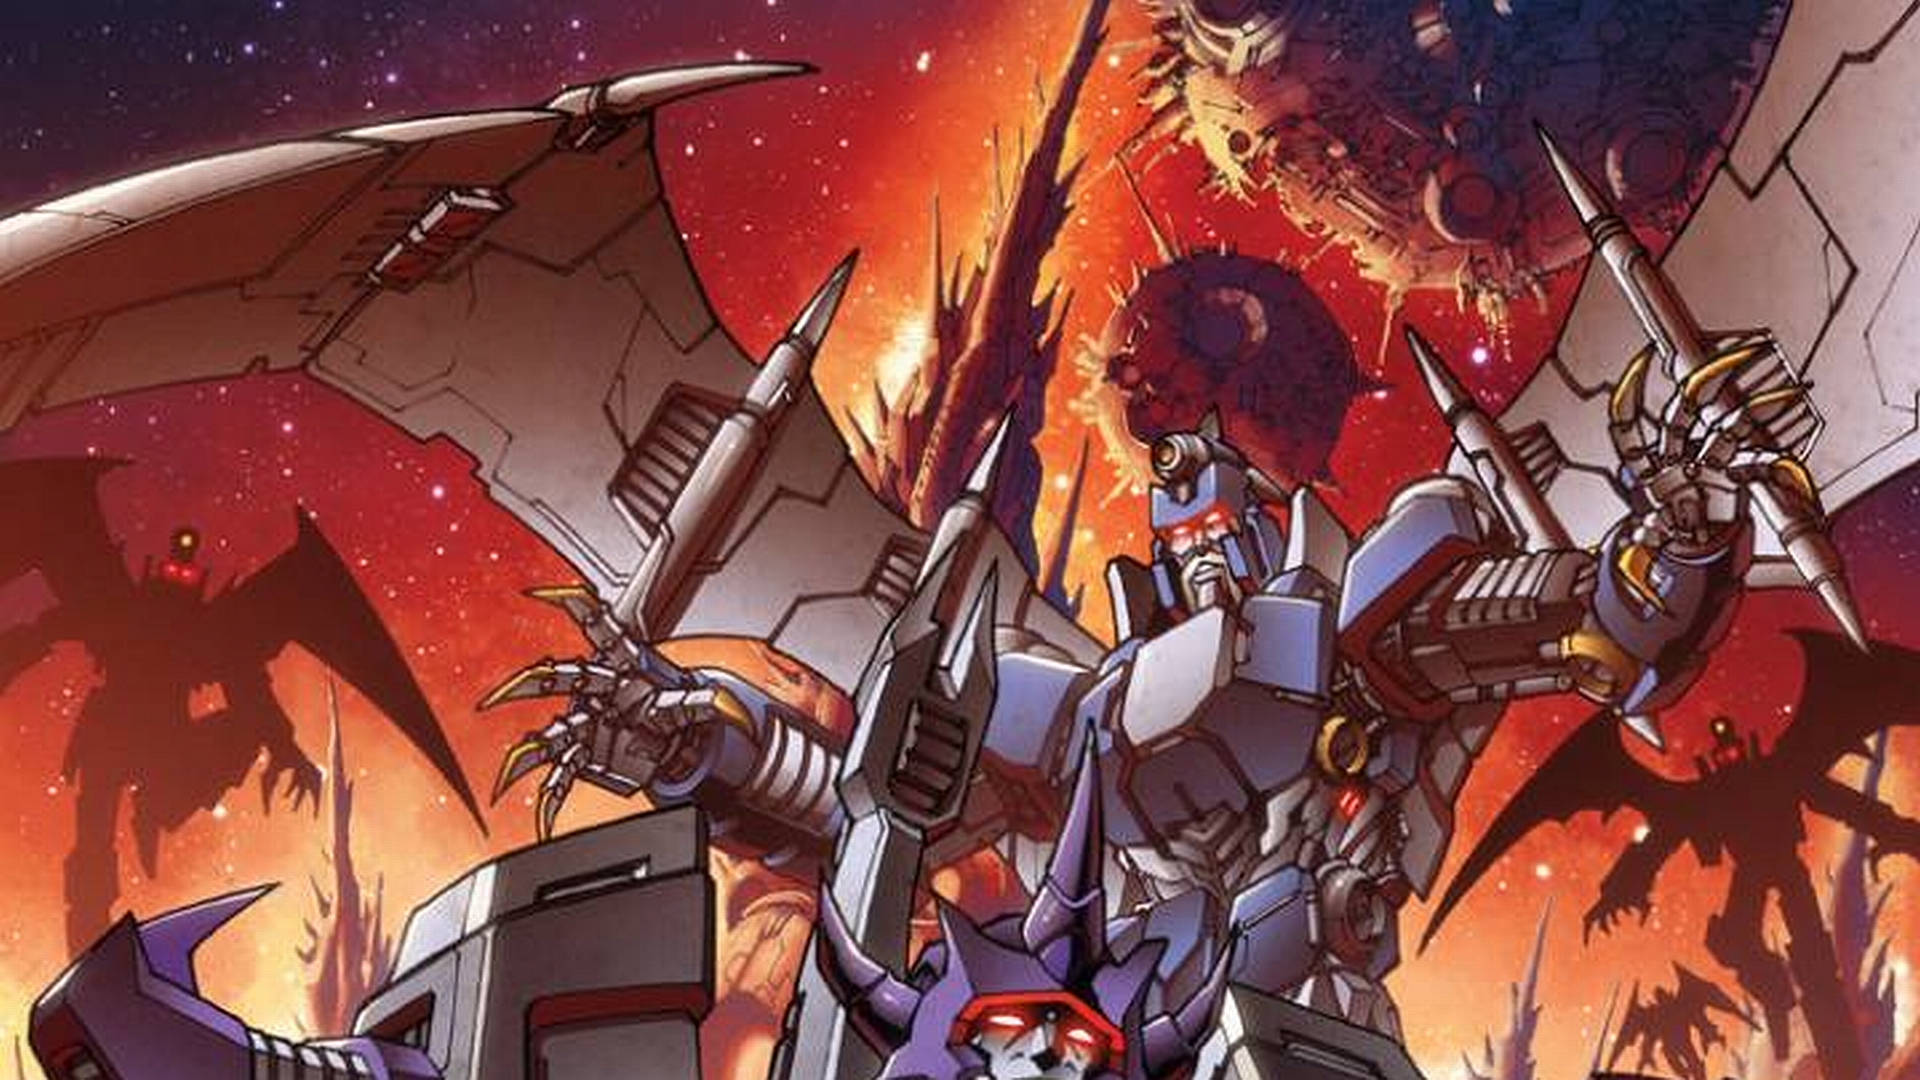 Animated Wallpapers Hd 1080p Transformers Hd Wallpaper Background Image 1920x1080